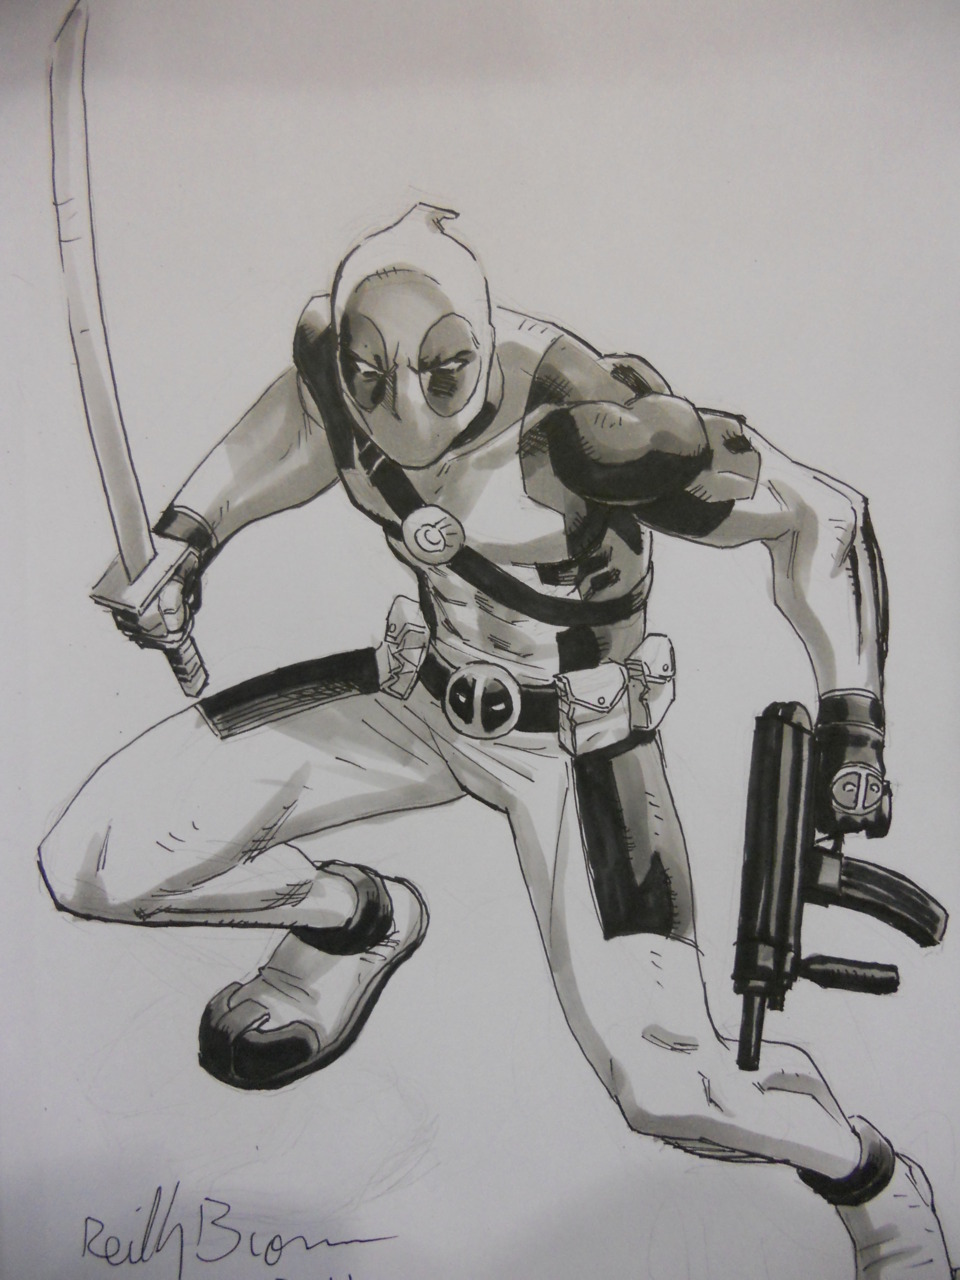 notgoingtohelp: Deadpool - Reilly Brown This is a sketch of Deadpool I got in my sketchbook at Baltimore Comic Con, from Reilly Brown. He was fun to talk to, and as you can see his skills are just Uncanny. I'm looking forward to his online comic Power Play that you can get a free preview of Here and check out their tumblr Here.  Also check out Reilly's DeviantArt for more fantastically drawn goodness by him! Reilly Brown at Deviant Art